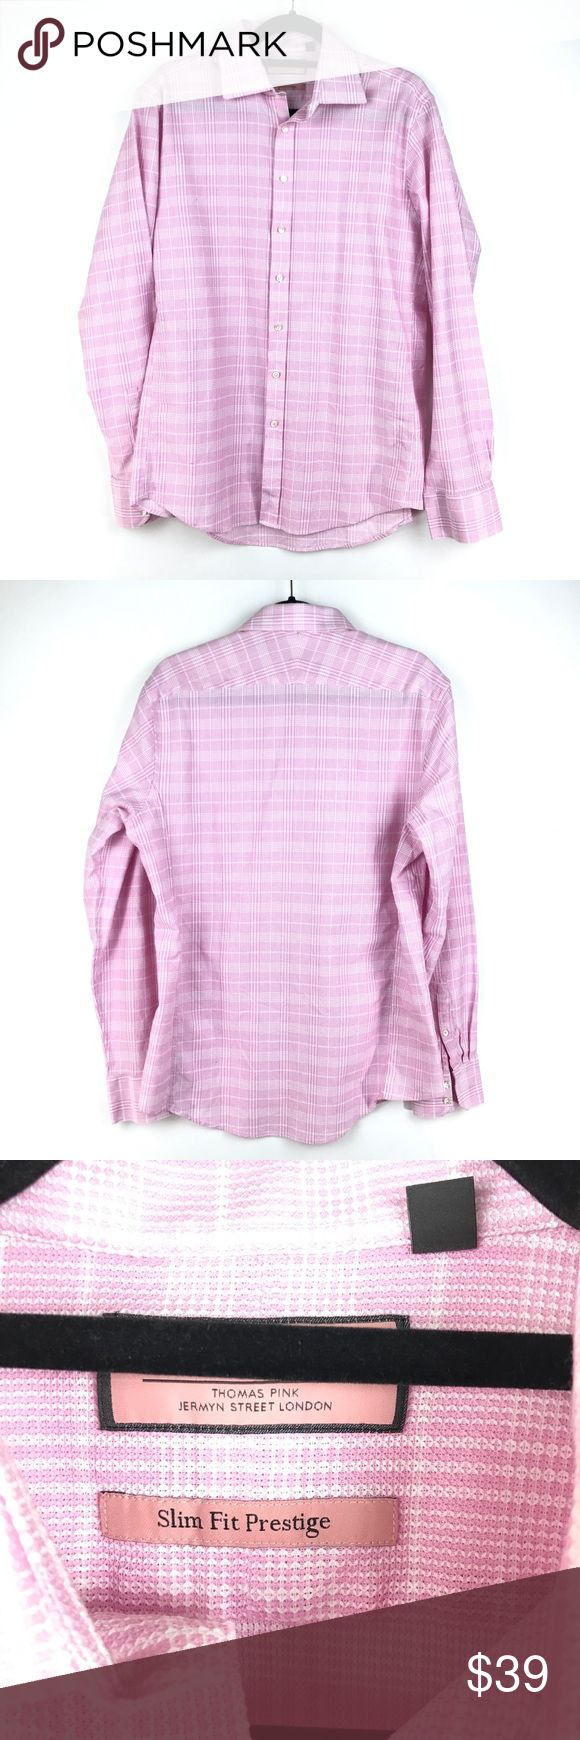 """PINK Thomas Pink SlimFit Prestige Dress Shirt 16.5 PINK Thomas Pink Size 16.5 Dress Shirt Slim Fit Prestige Pink & White Plaid M92  Measurements: Chest:  21"""" Flat Across Length: 29"""" Flat Across  In good preowned condition with no known flaws and light overall wear. Thomas Pink Shirts Dress Shirts"""